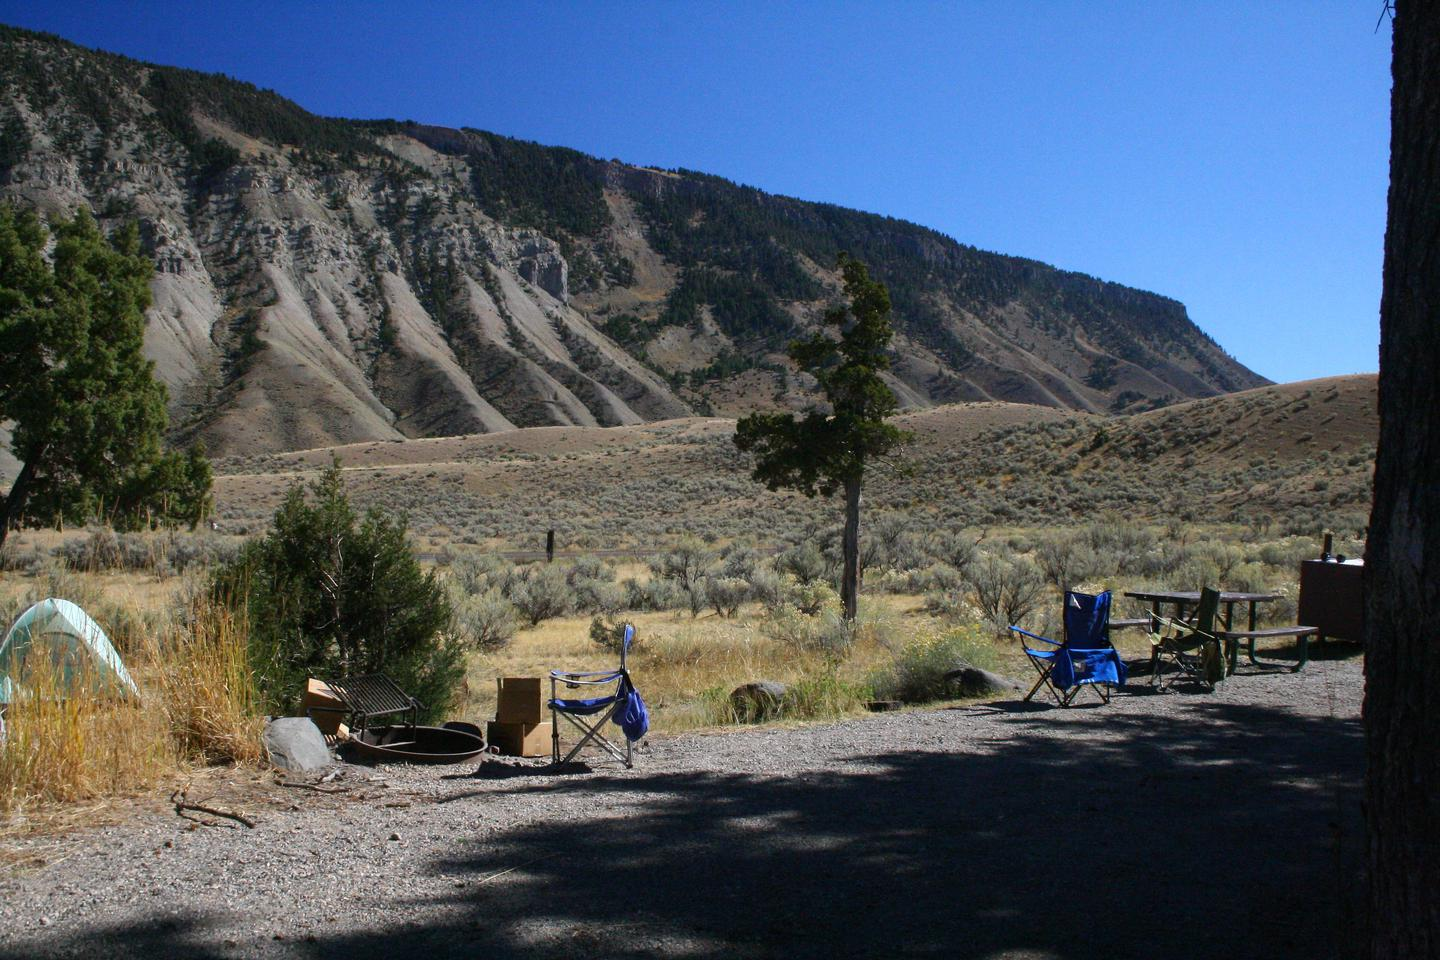 Mammoth Hot Springs Campground Site 32.Mammoth Campsite #32, looking east